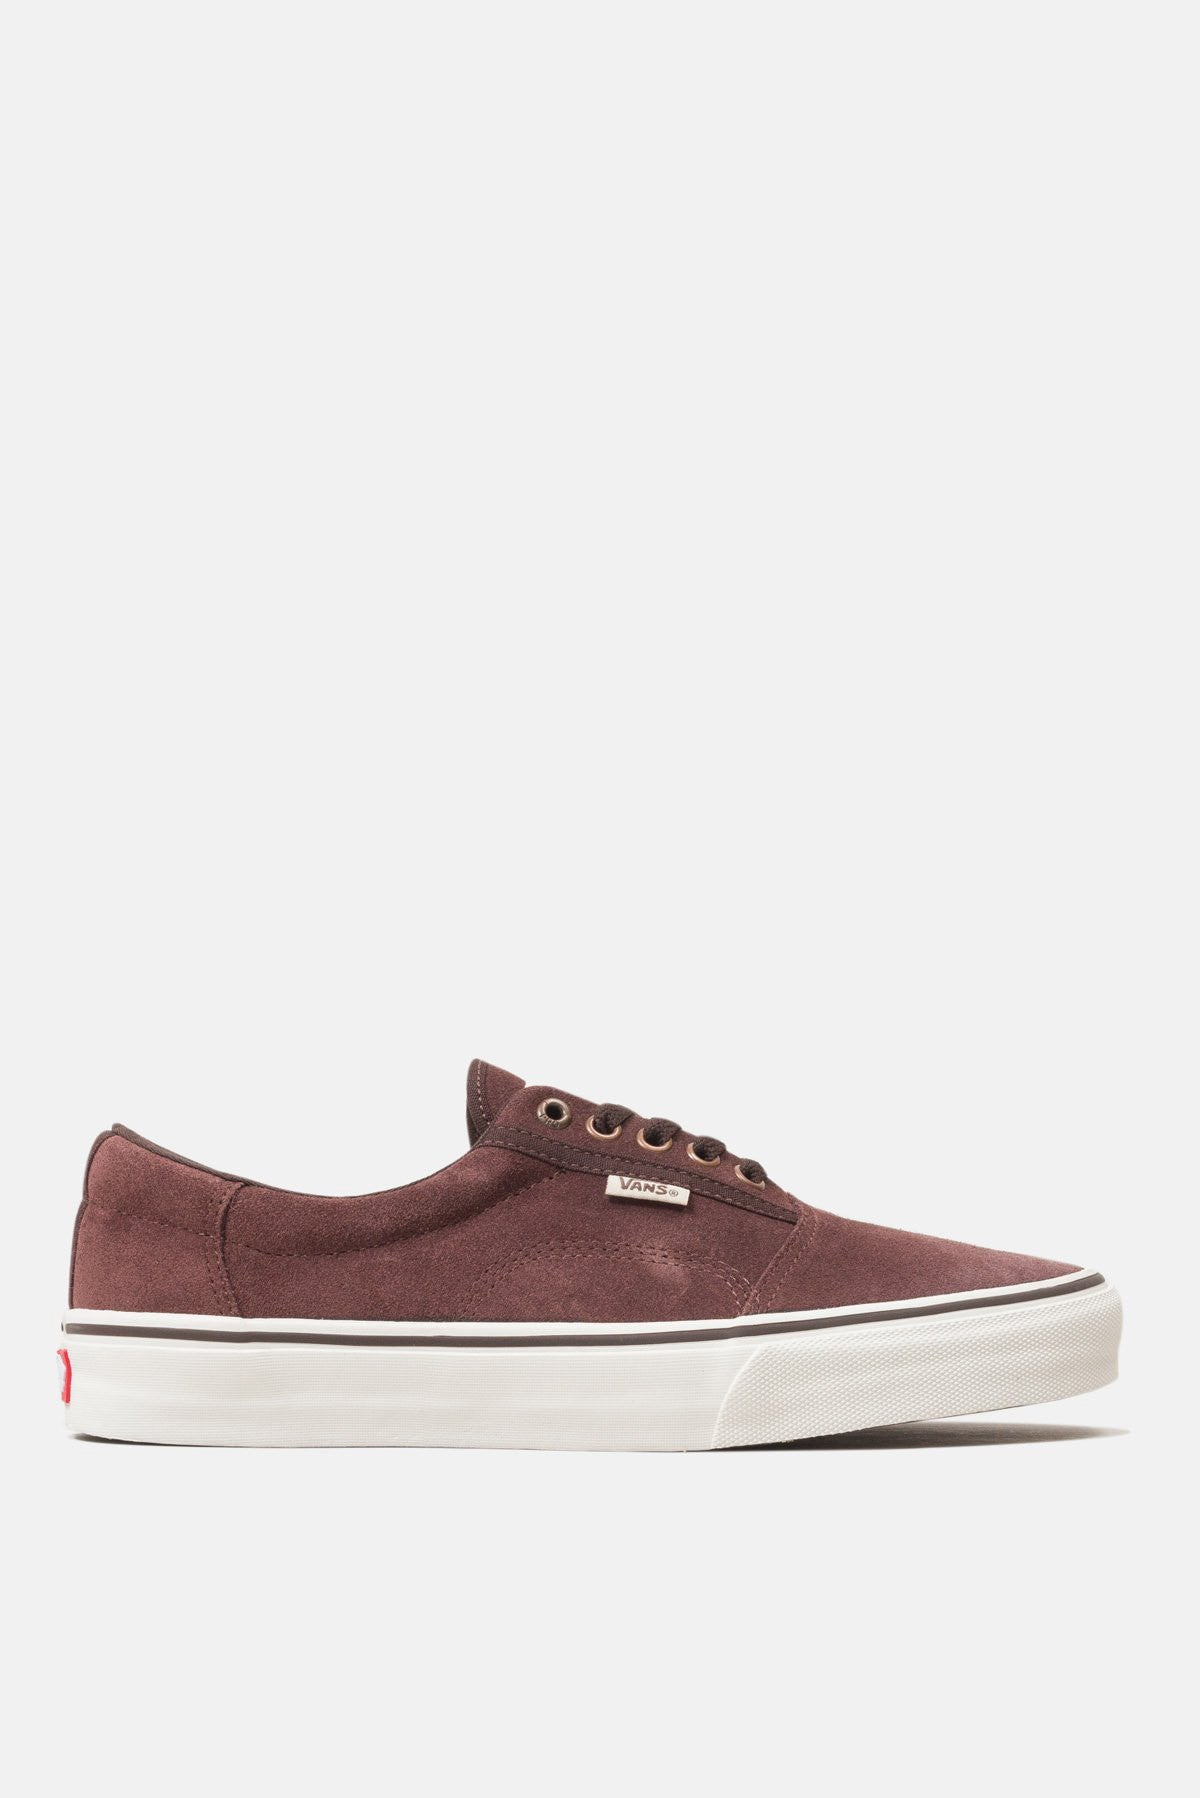 8667664471 Vans MN Rowley Solos Shoes available from Priory